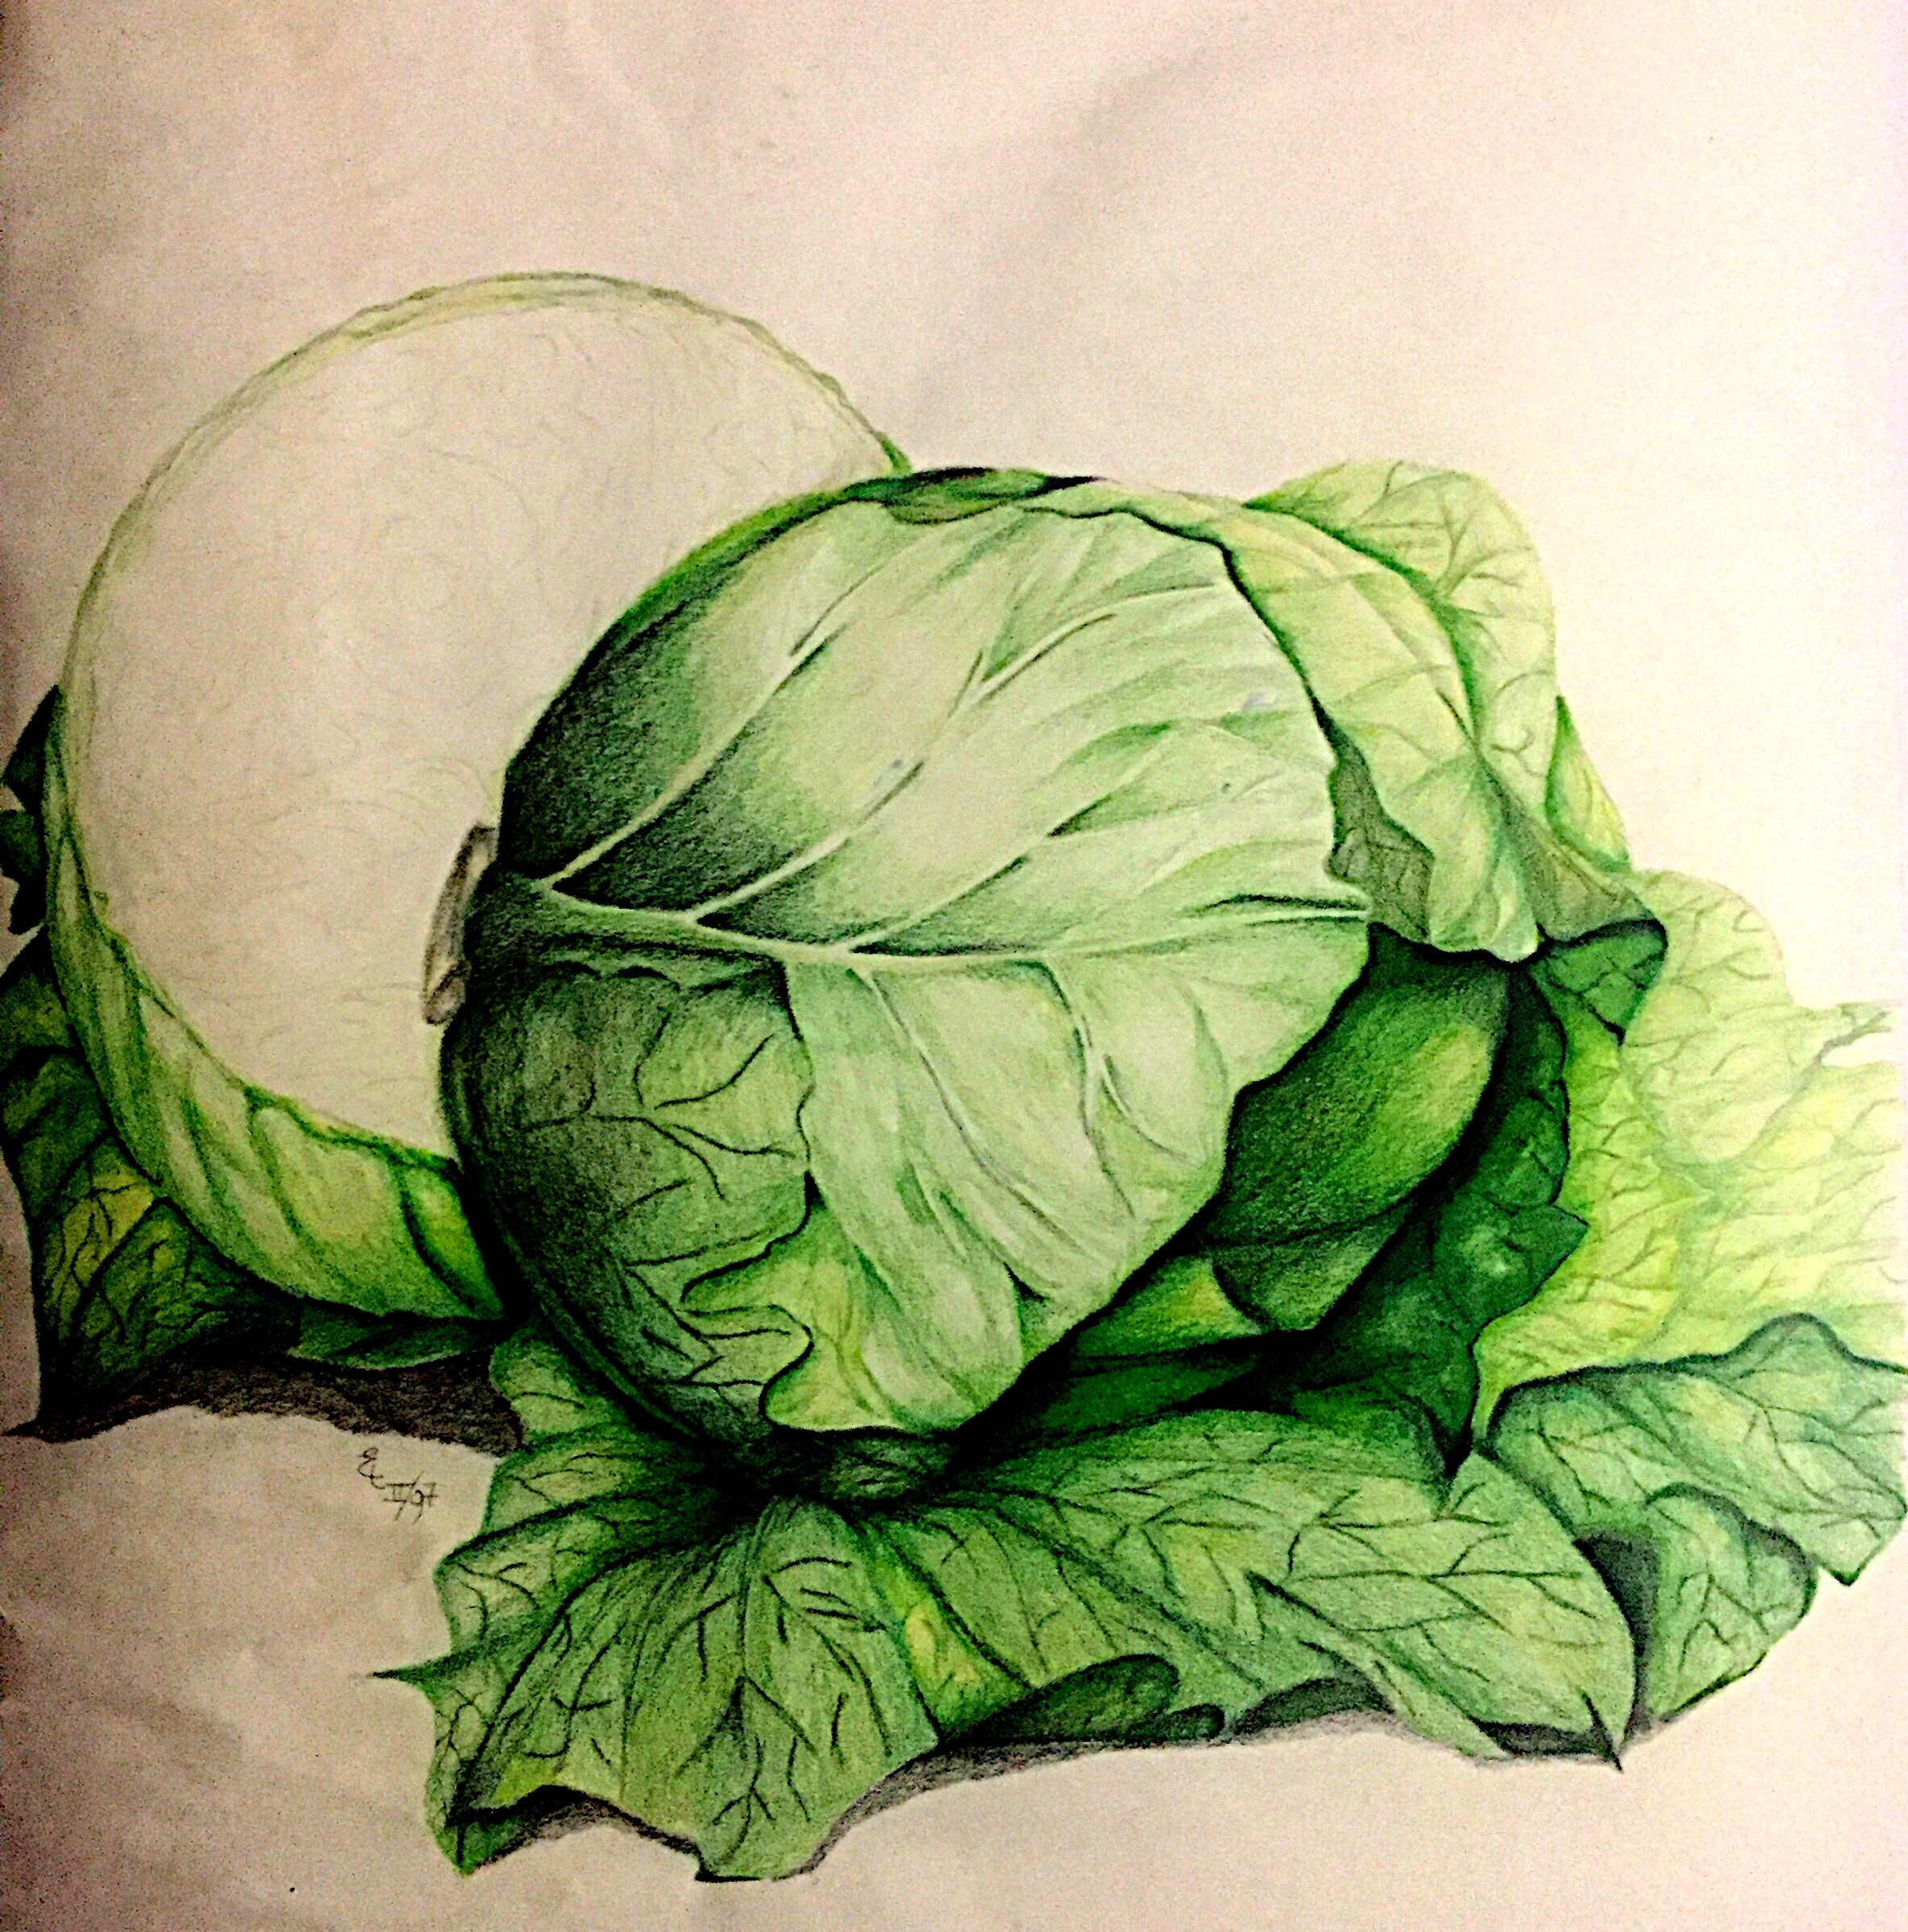 1997, Still Life Cabbage, colored pencil